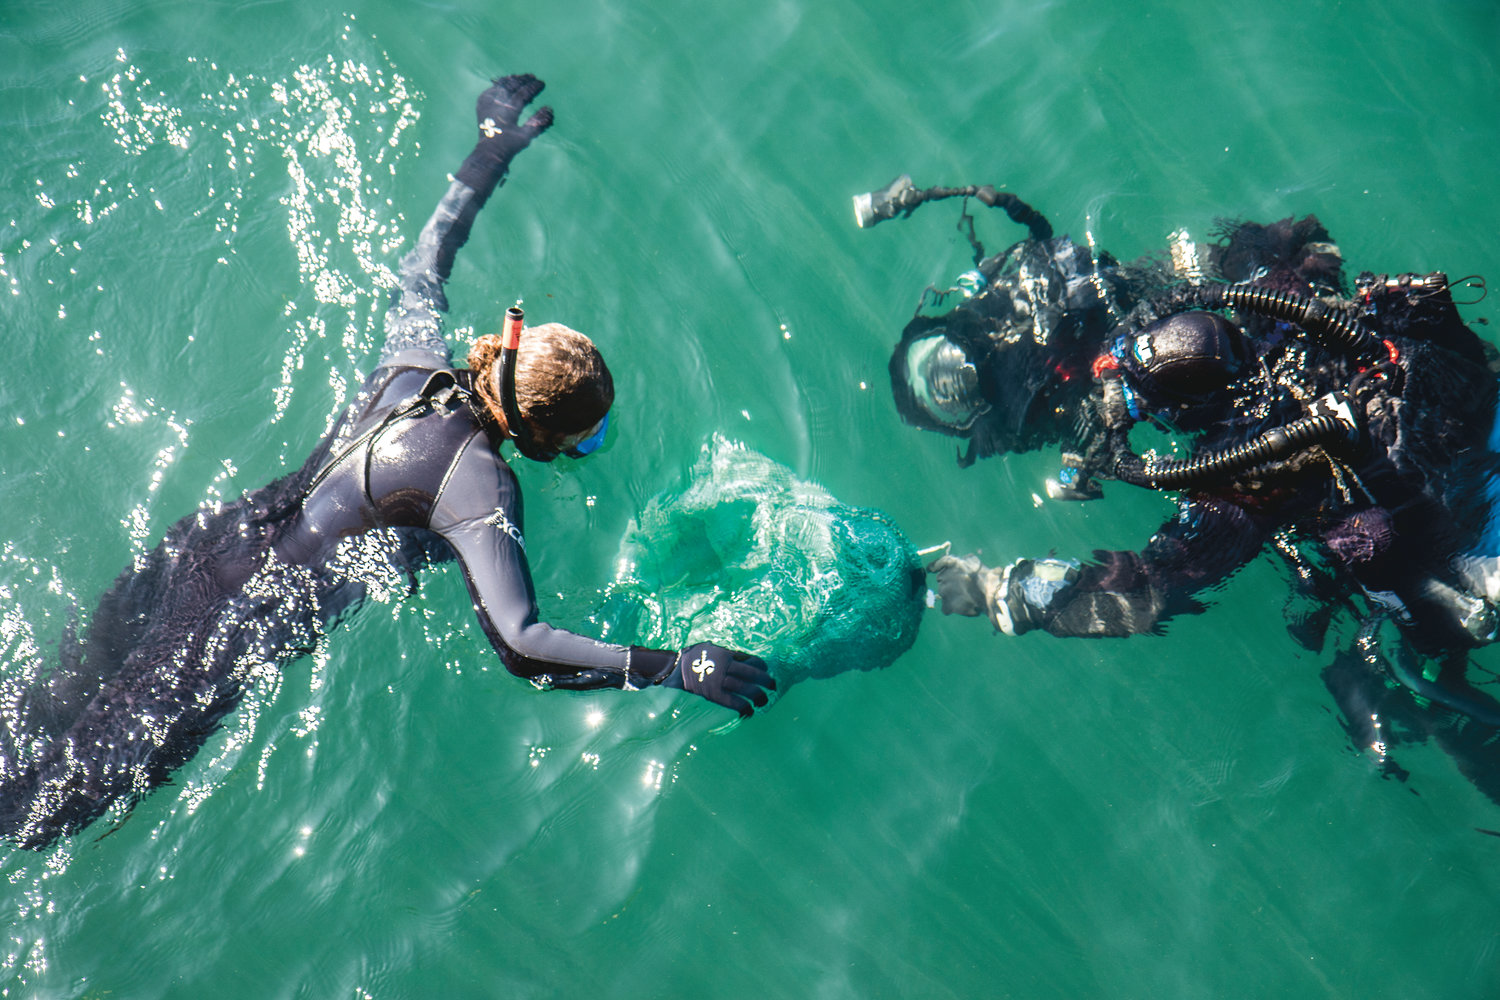 Ali Redman hands off Eleanora, the Giant Pacific Octopus to Florian Graner who is suited up in full diving gear to take her to a den on the seafloor, where they hope she will continue to live.